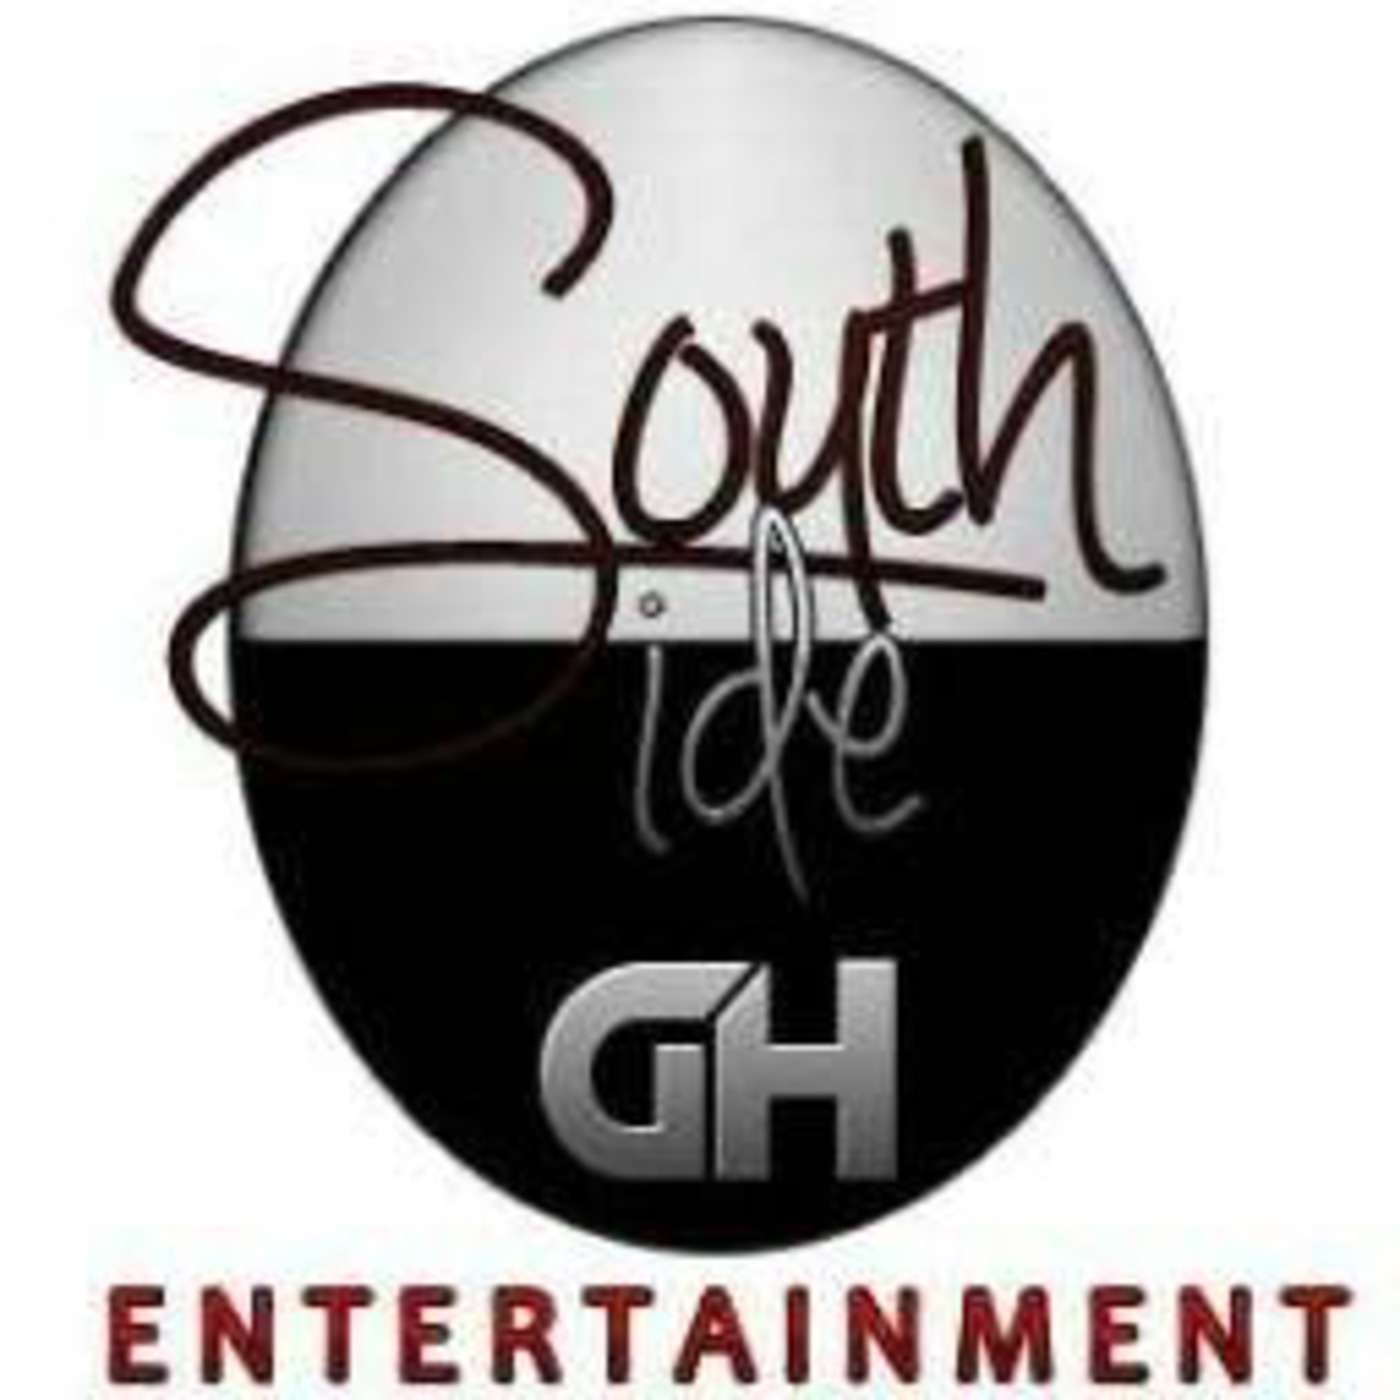 Southside Gh's Podcast